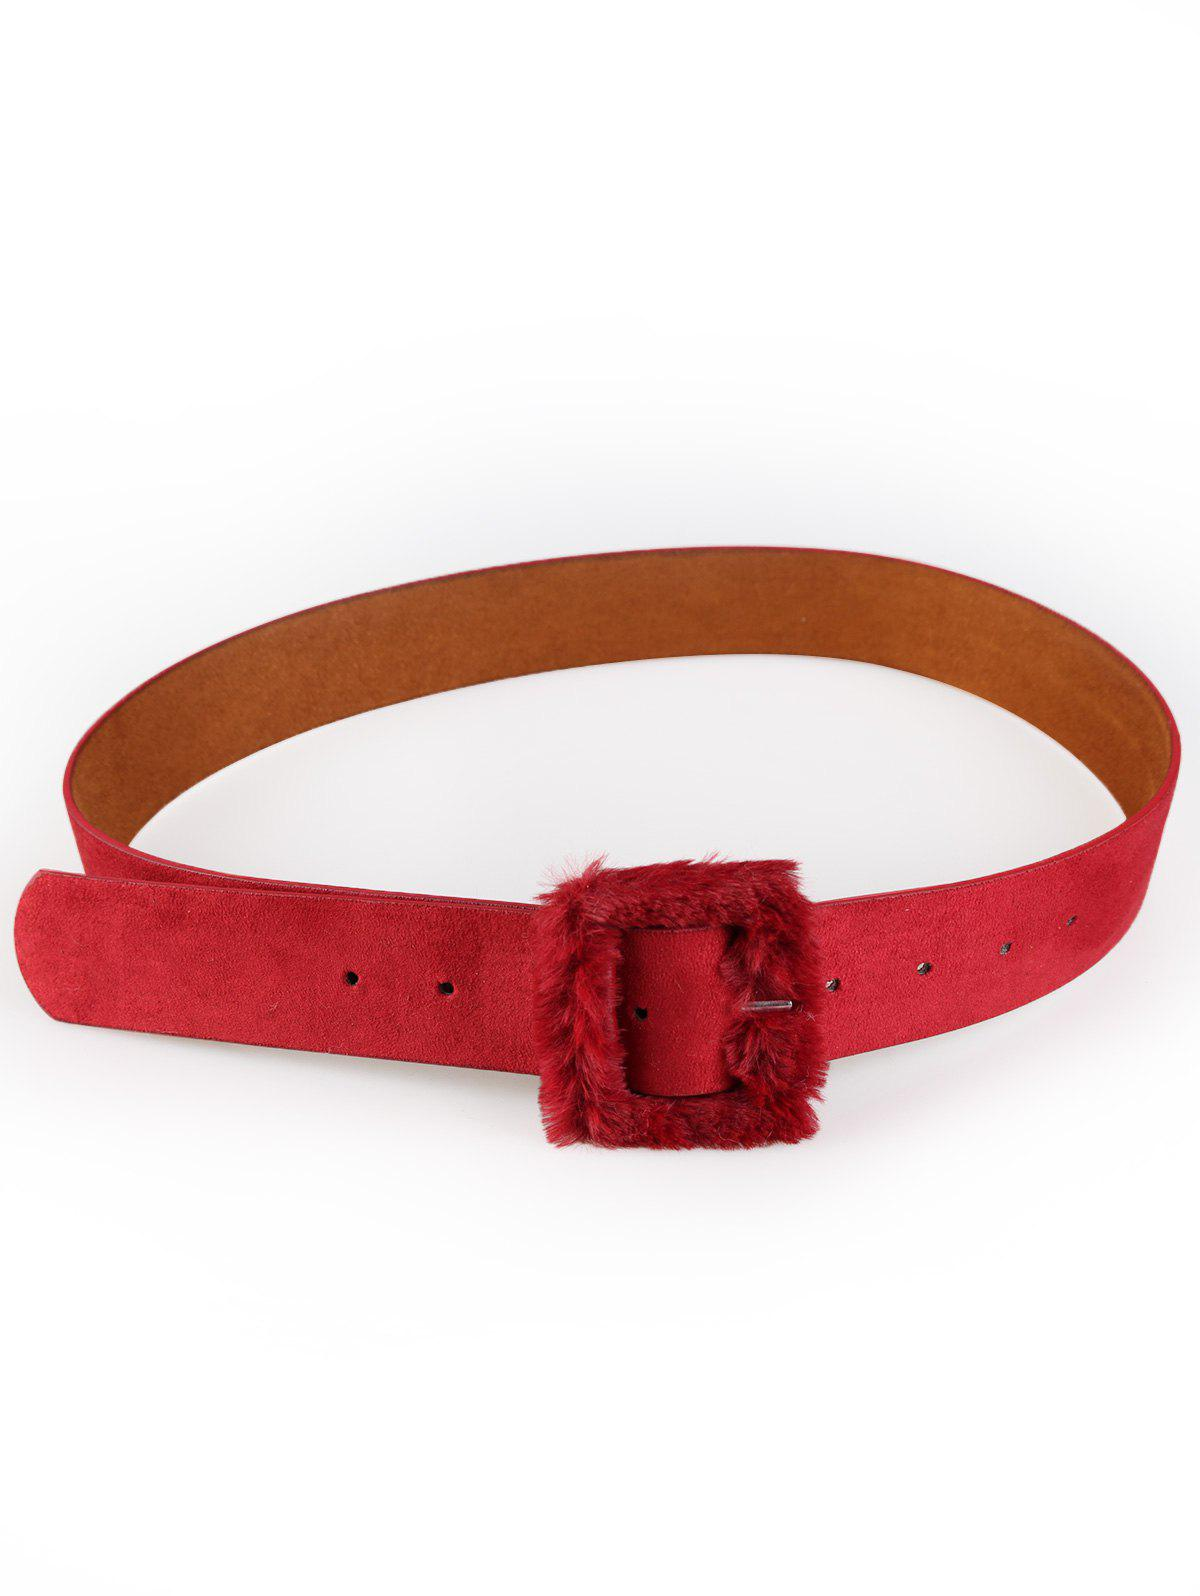 Sale Vintage Furry Buckle Embellished Faux Leather Waist Belt